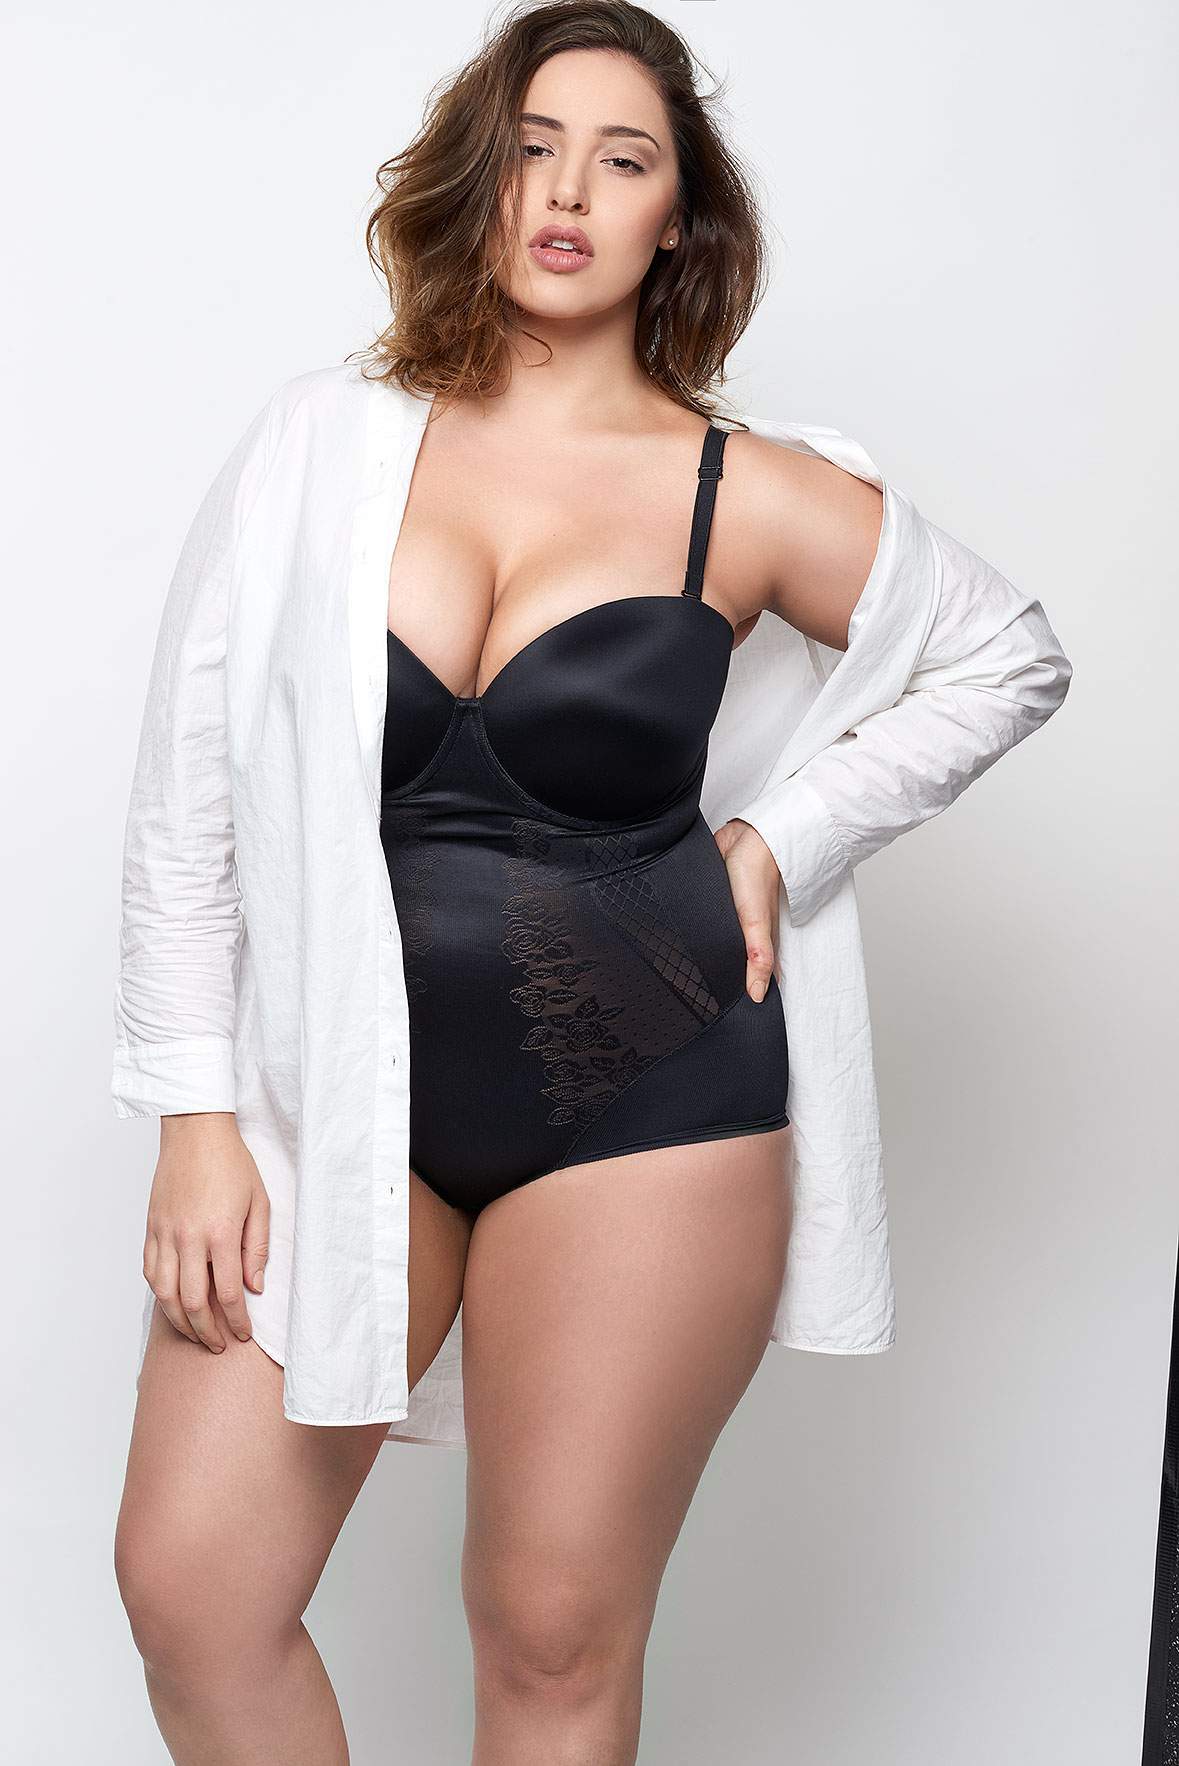 Jada-models-one-1-la-vie-en-lingerie-lingerie-la-femme-plus-size-model-black-bodysuit-white-shirt-03